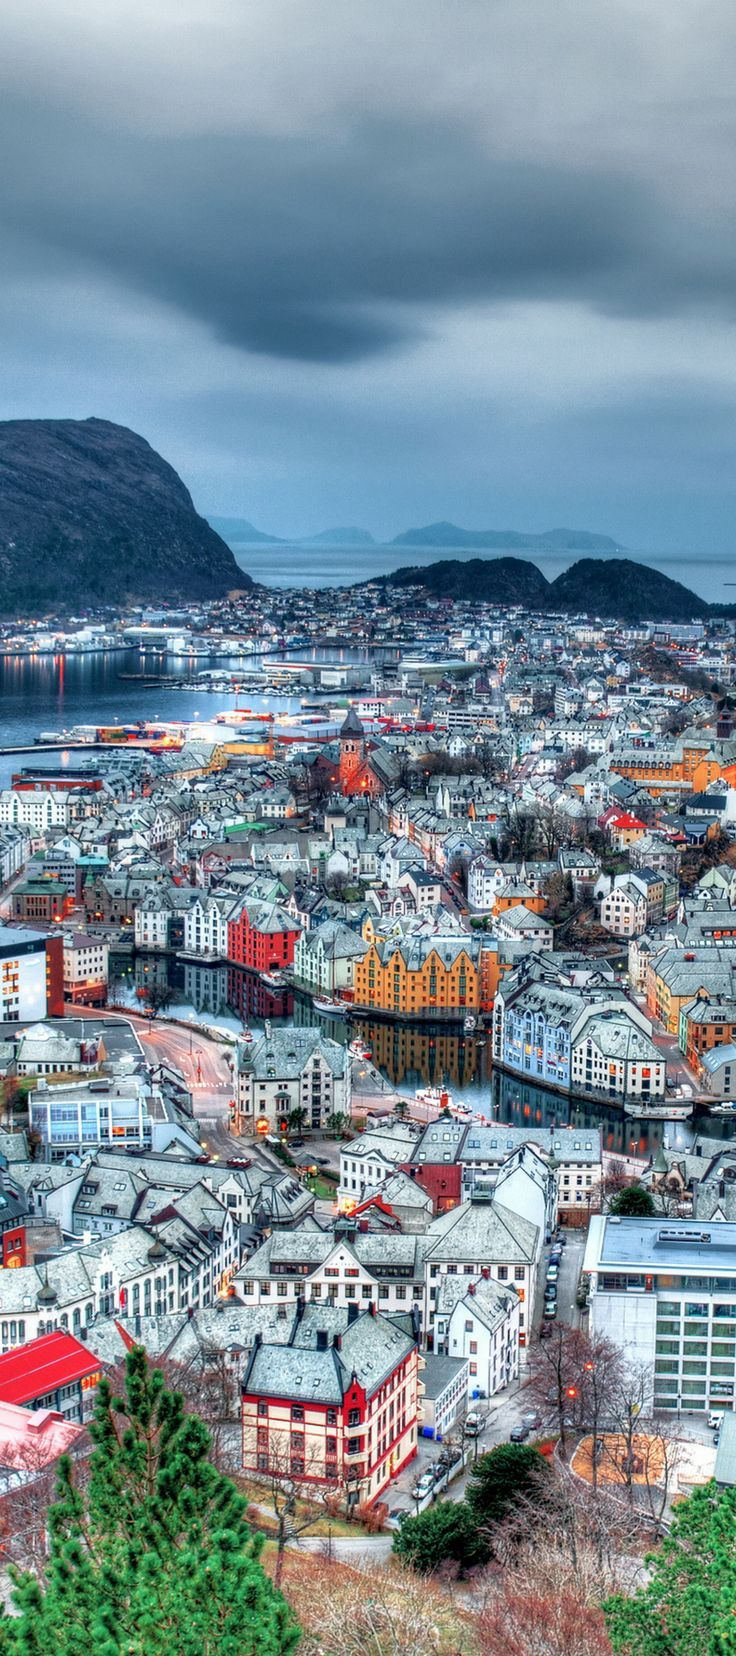 20 Photos That Will Inspire You To Travel To Norway - Avenly Lane Travel Blog